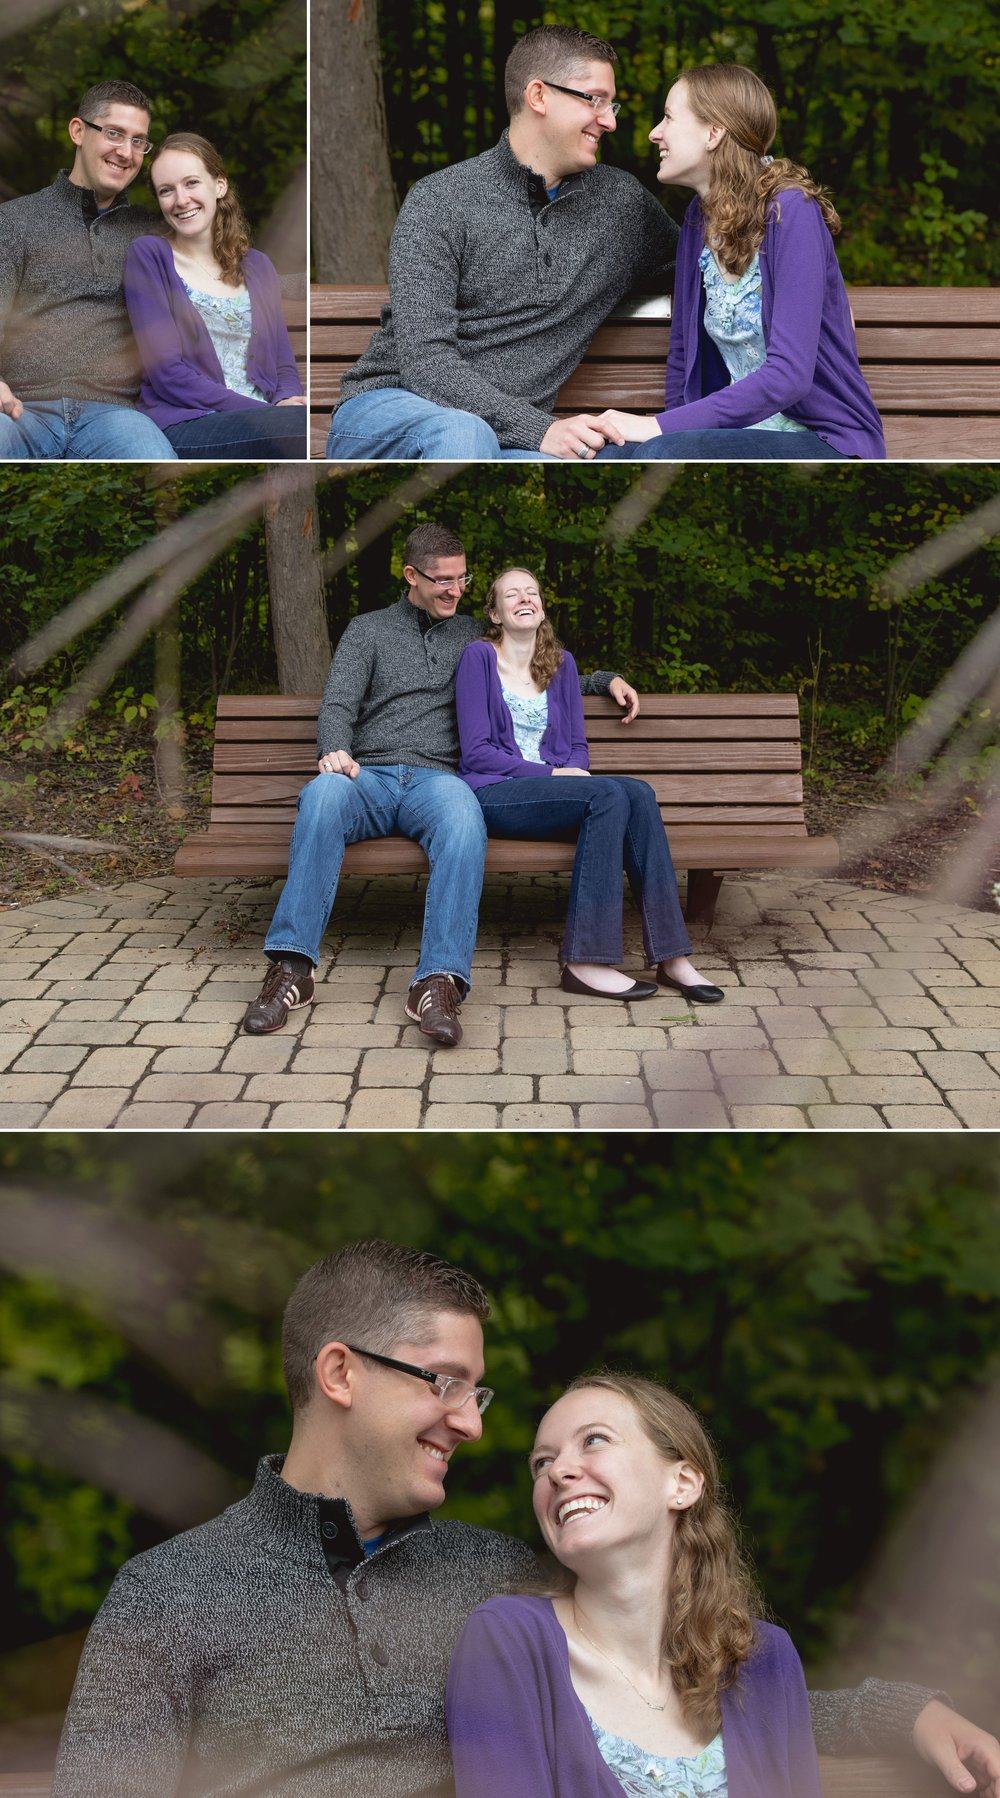 highbanks-metro-park-lewis-center-engagement-portraits-gahanna-columbus-photographer-studio-001.JPG